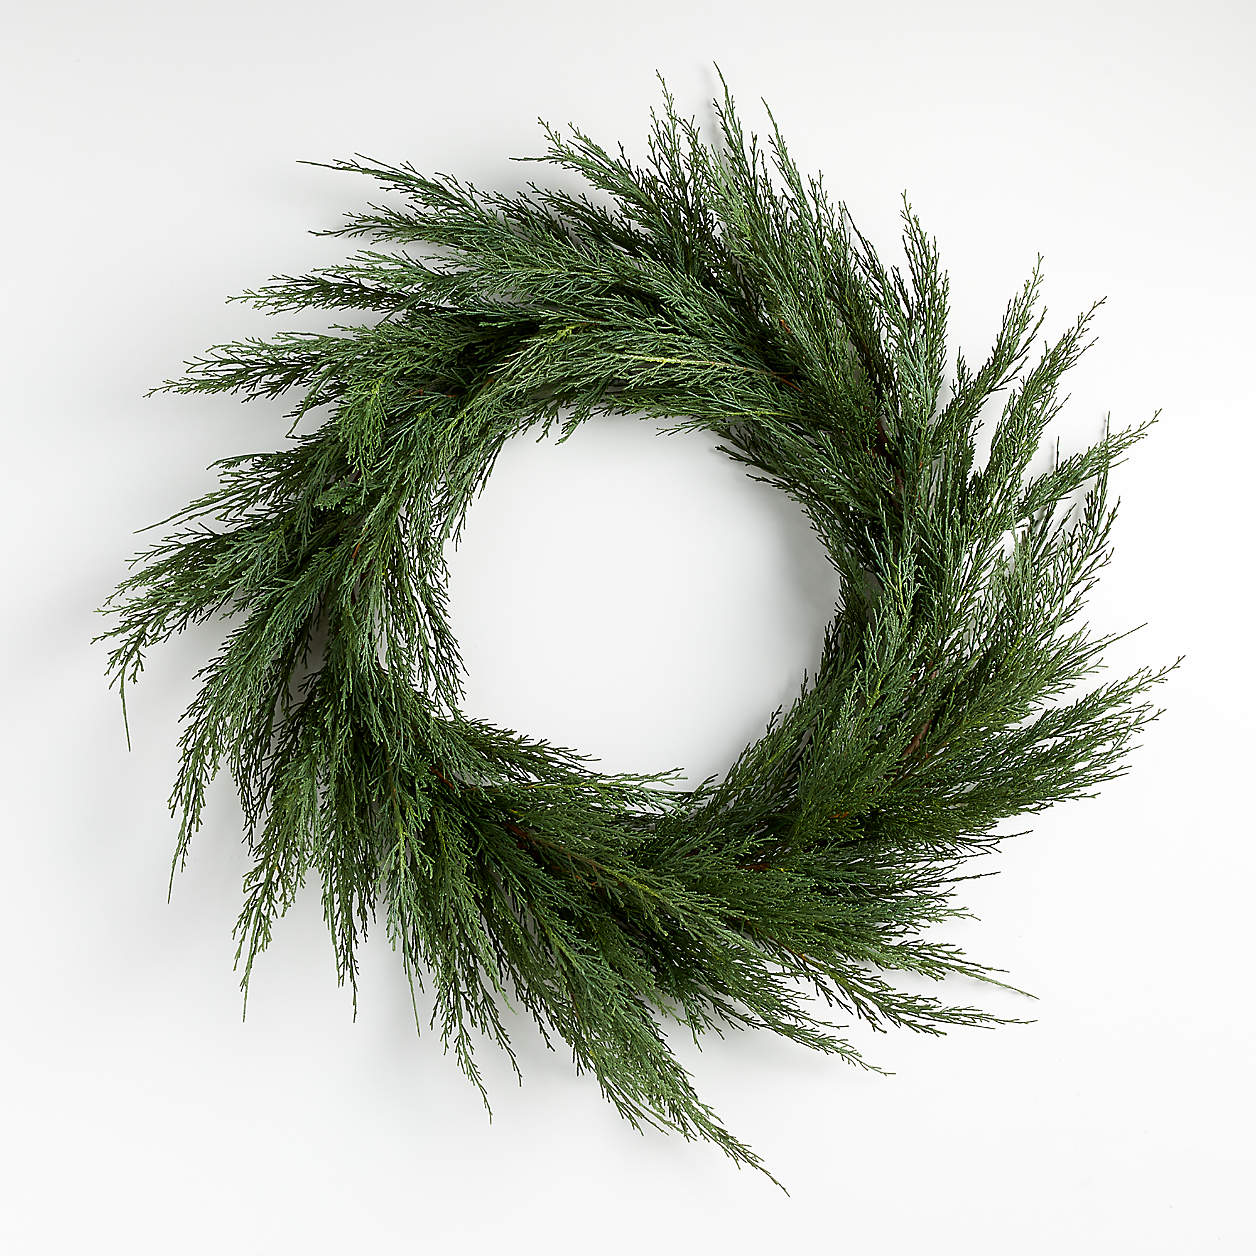 Make Your Own Crate and Barrel Inspired Cypress Christmas Wreath For Under Twenty Dollars. Cypress Dries Really Well and Will Last Until After Christmas!